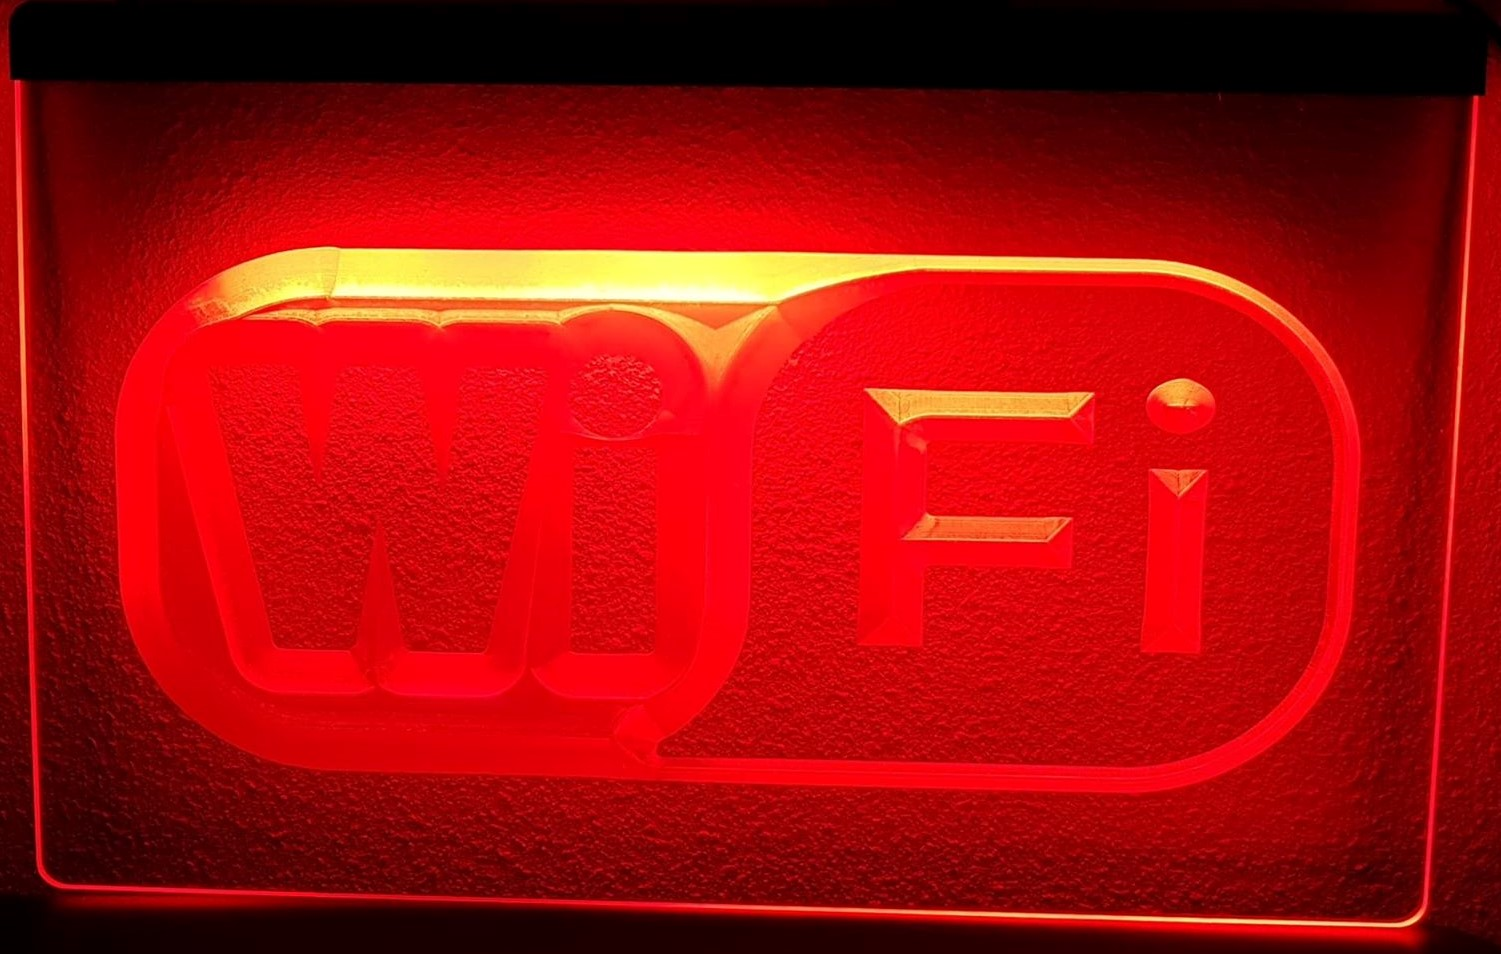 WIFI reclame 3D LED RECLAME VERLICHTING LAMP | Americanshop